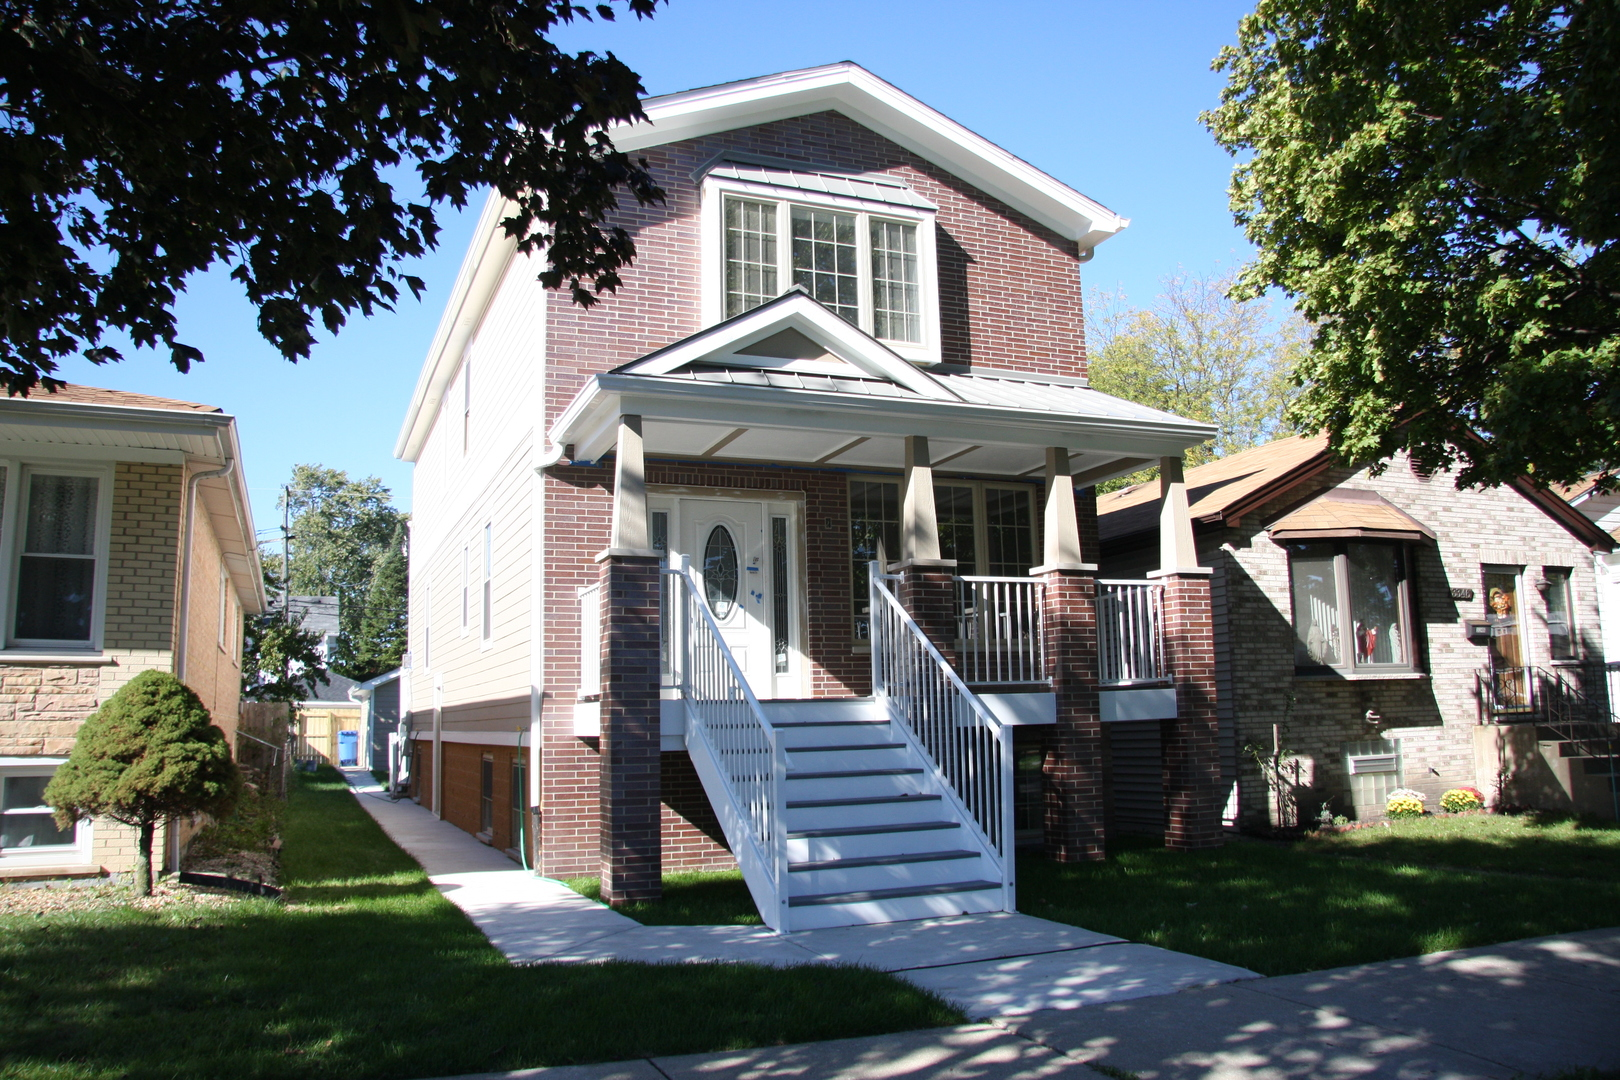 3344 NORTH OTTAWA AVENUE, CHICAGO, IL 60634